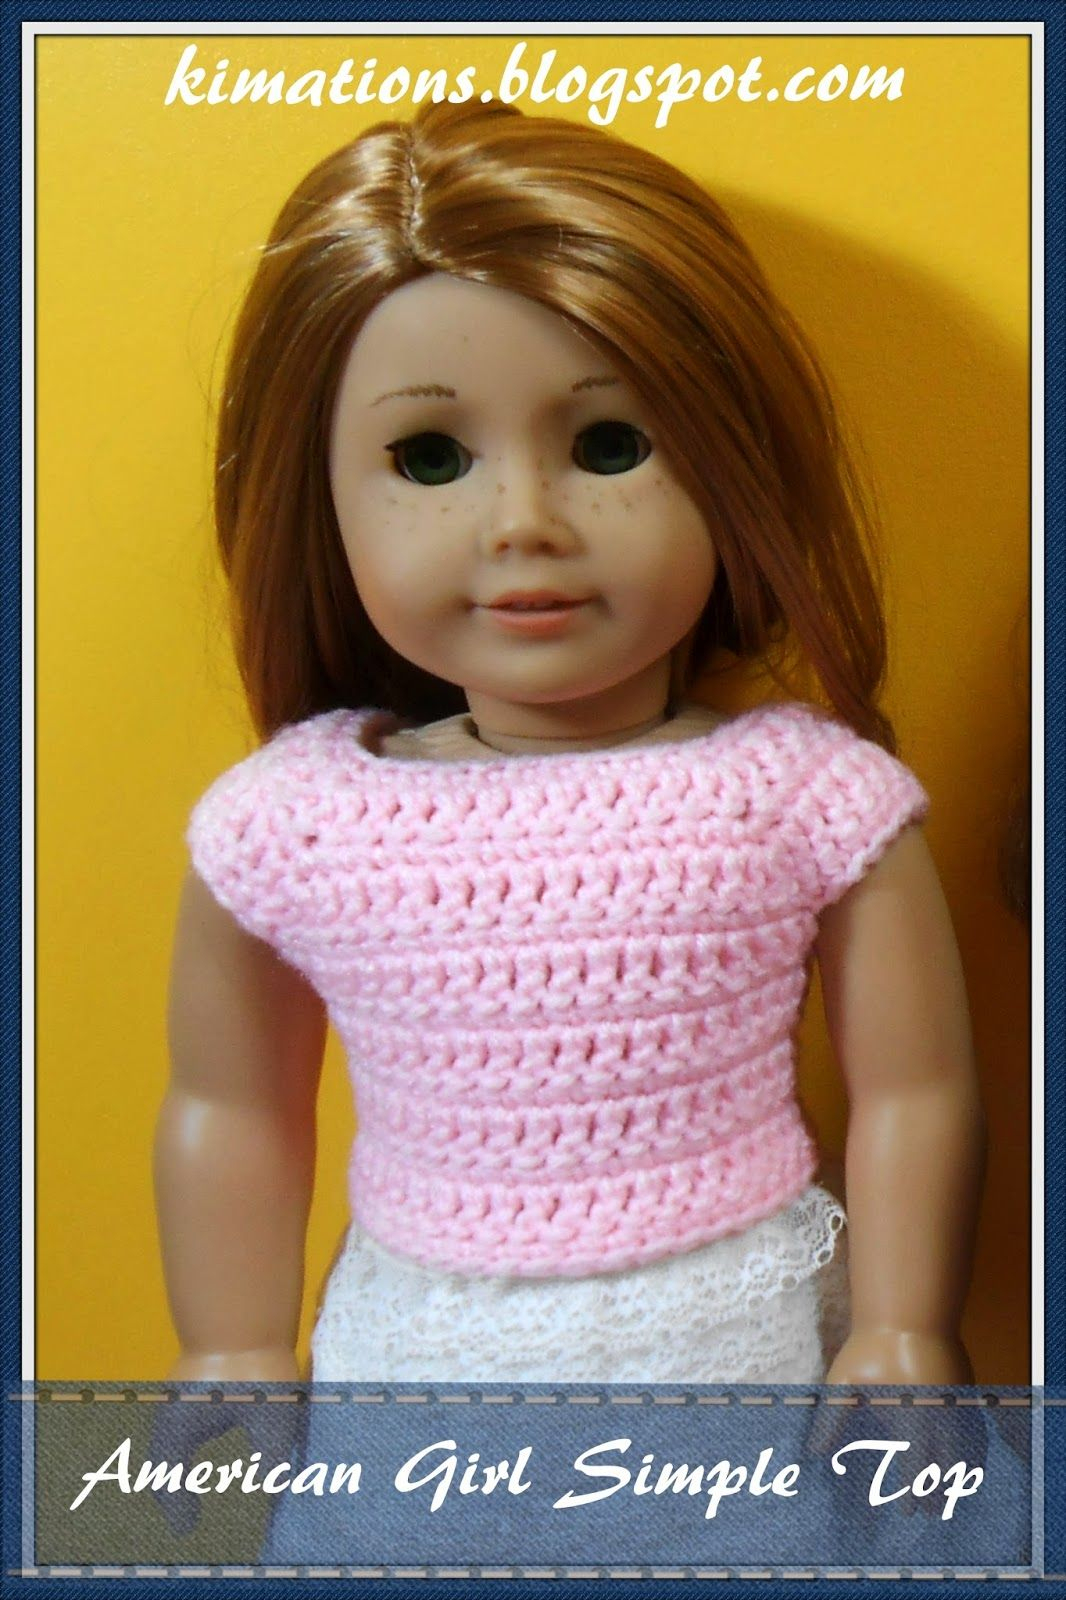 Free Crochet Pattern For 18 Inch Doll. Kimations: American Girl - Free Printable Crochet Doll Clothes Patterns For 18 Inch Dolls